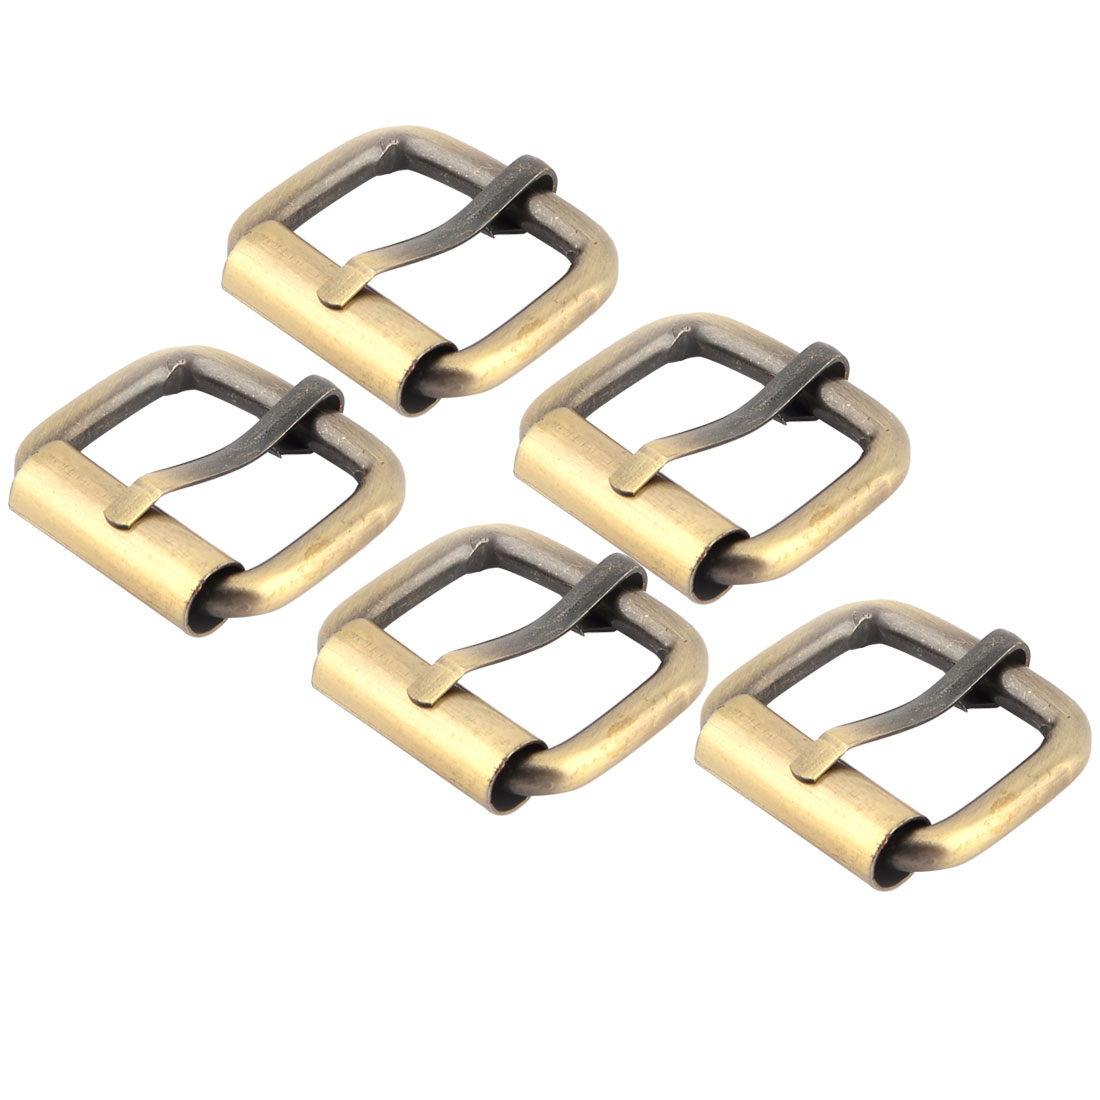 "Handbag Accessory Metal Rectangle Buckle 1"" x 0.7"" Inside Size Bronze Tone 5 Pcs"